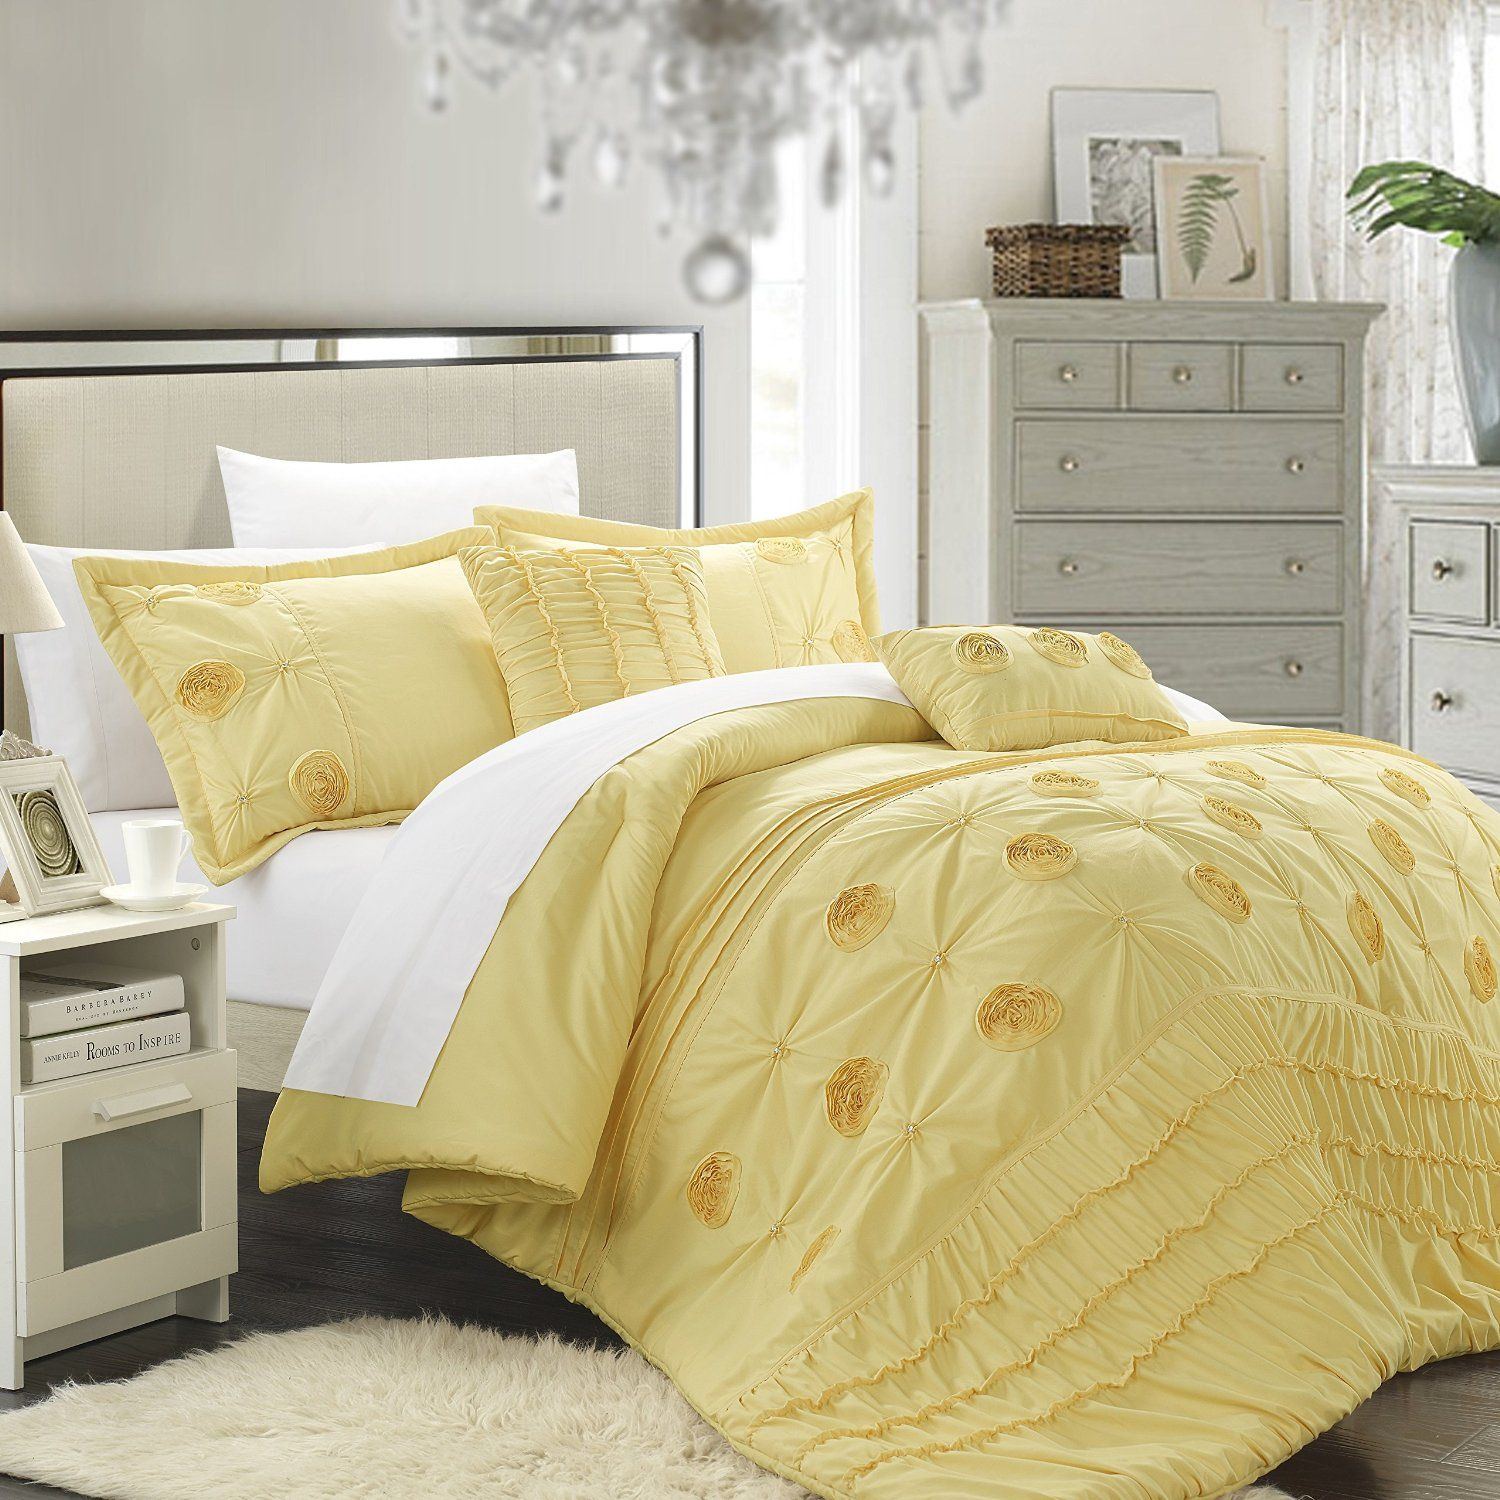 Yellow Comforters And Bedding Sets Yellow Bedding Comforter